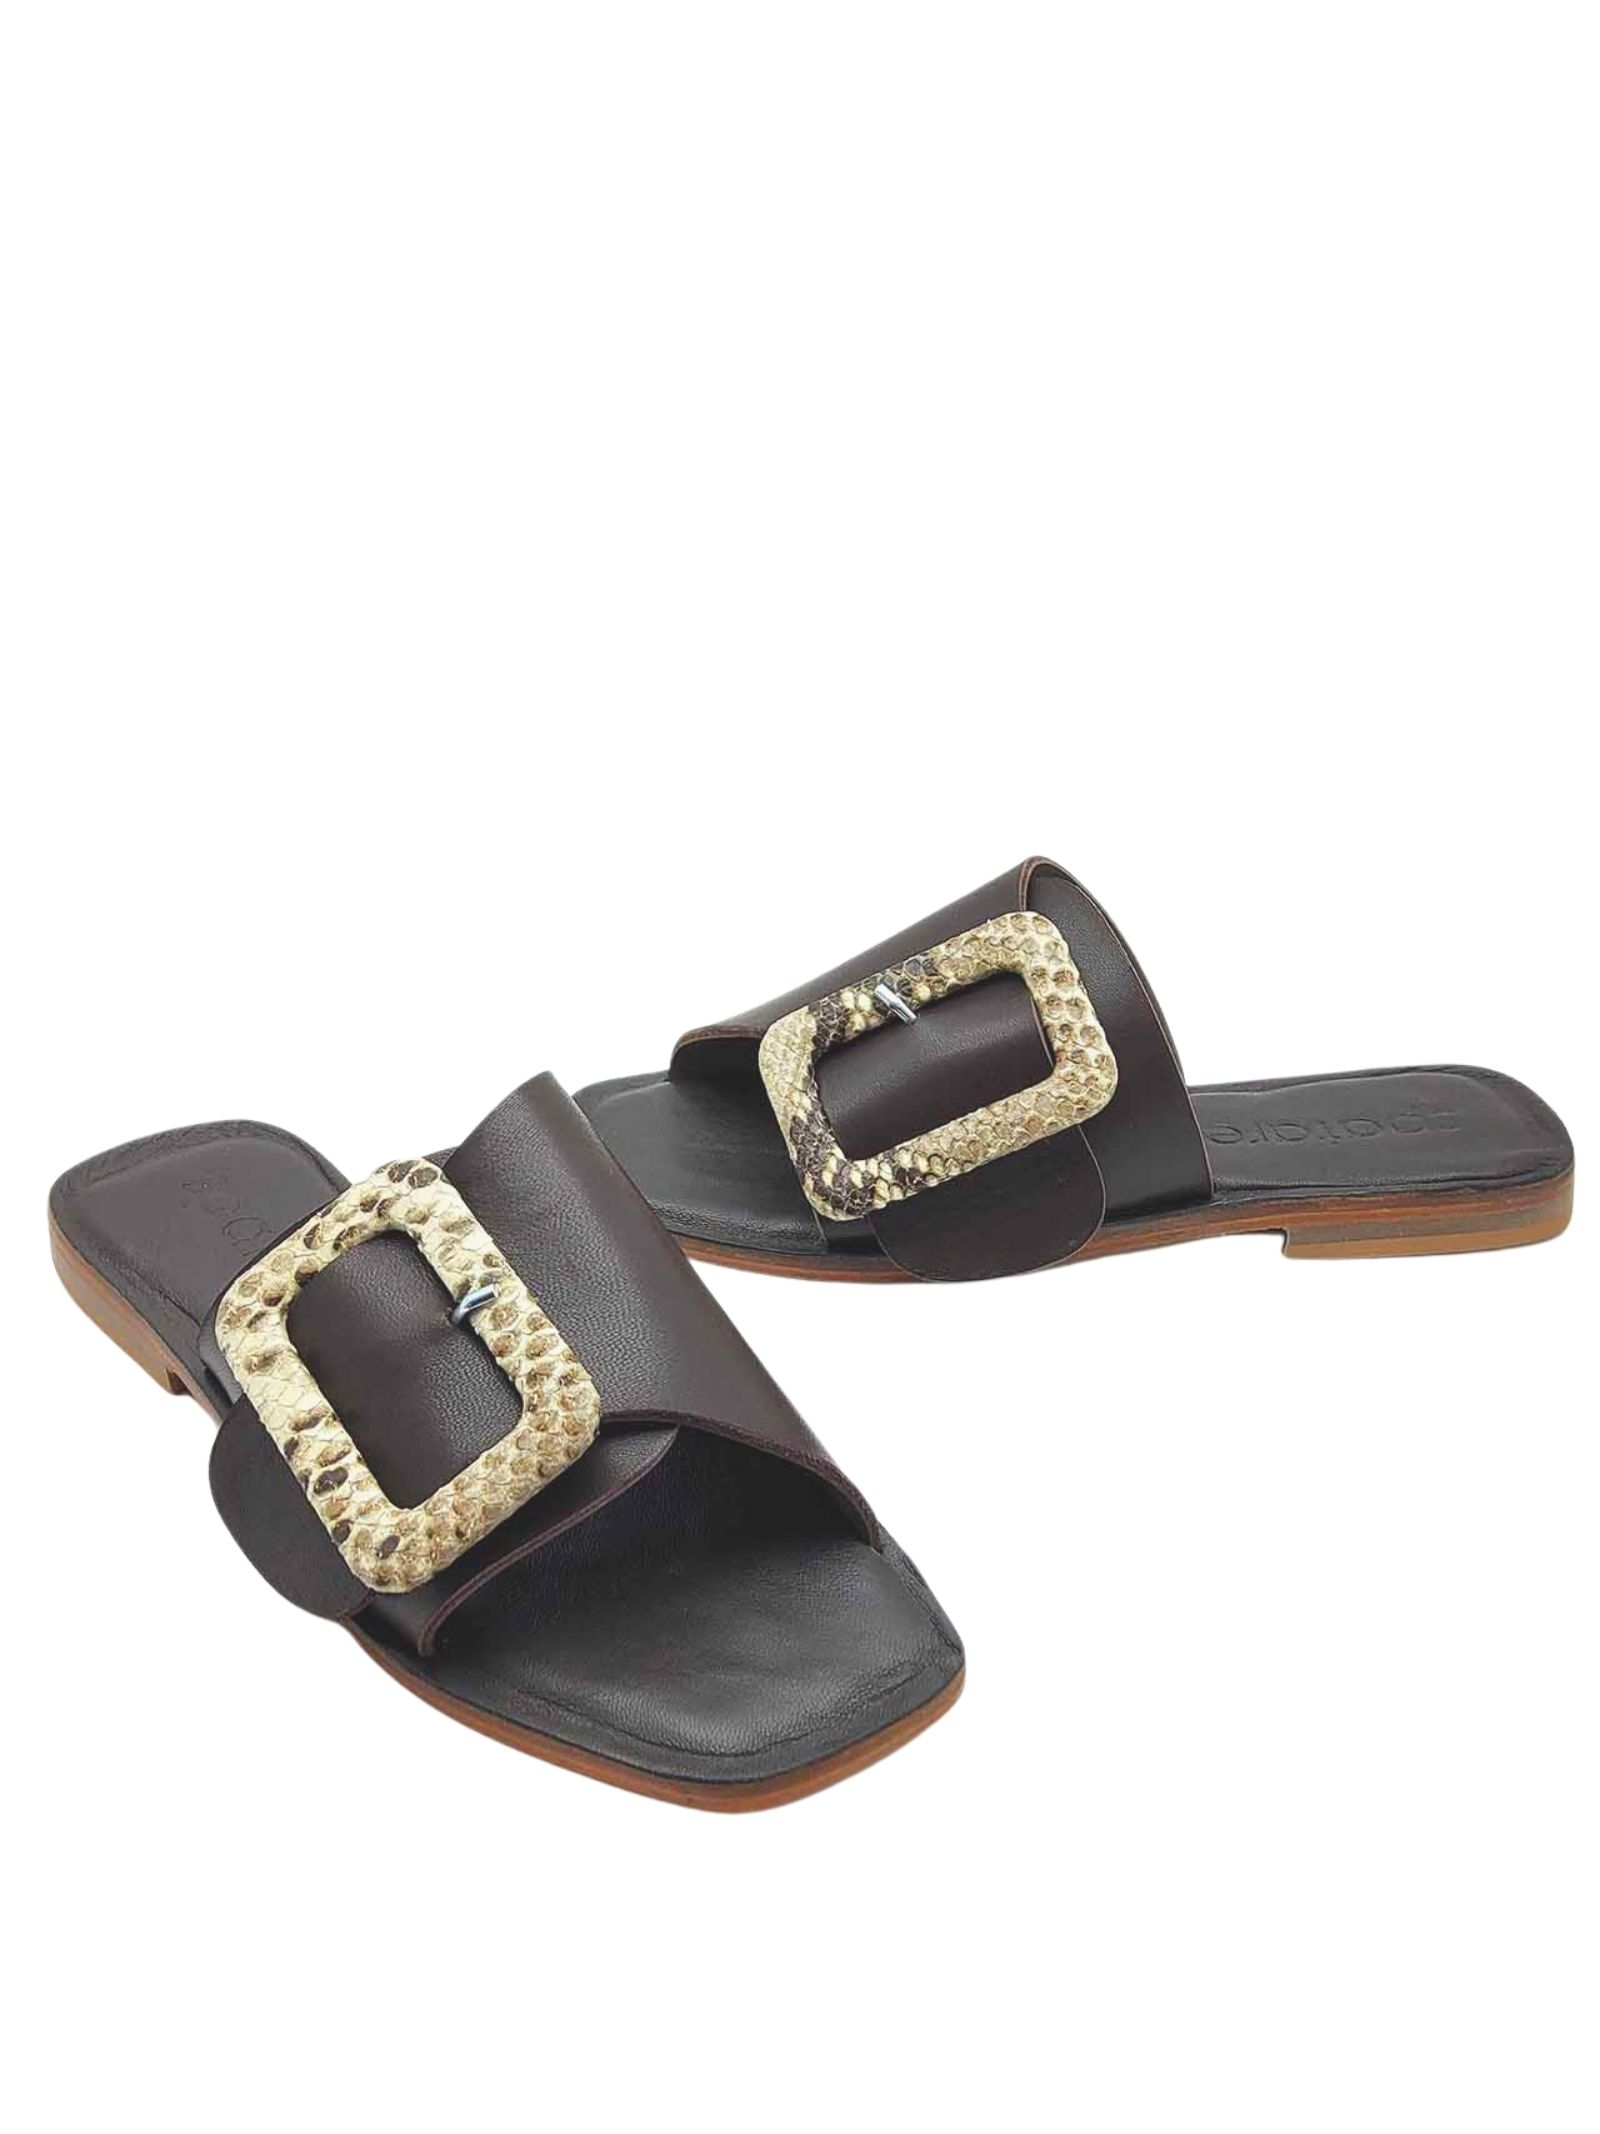 Women's Shoes Flat Sandals in Brown Cross Leather with Buckle Covered in Natural Python Spatarella | Flat sandals | DI15013